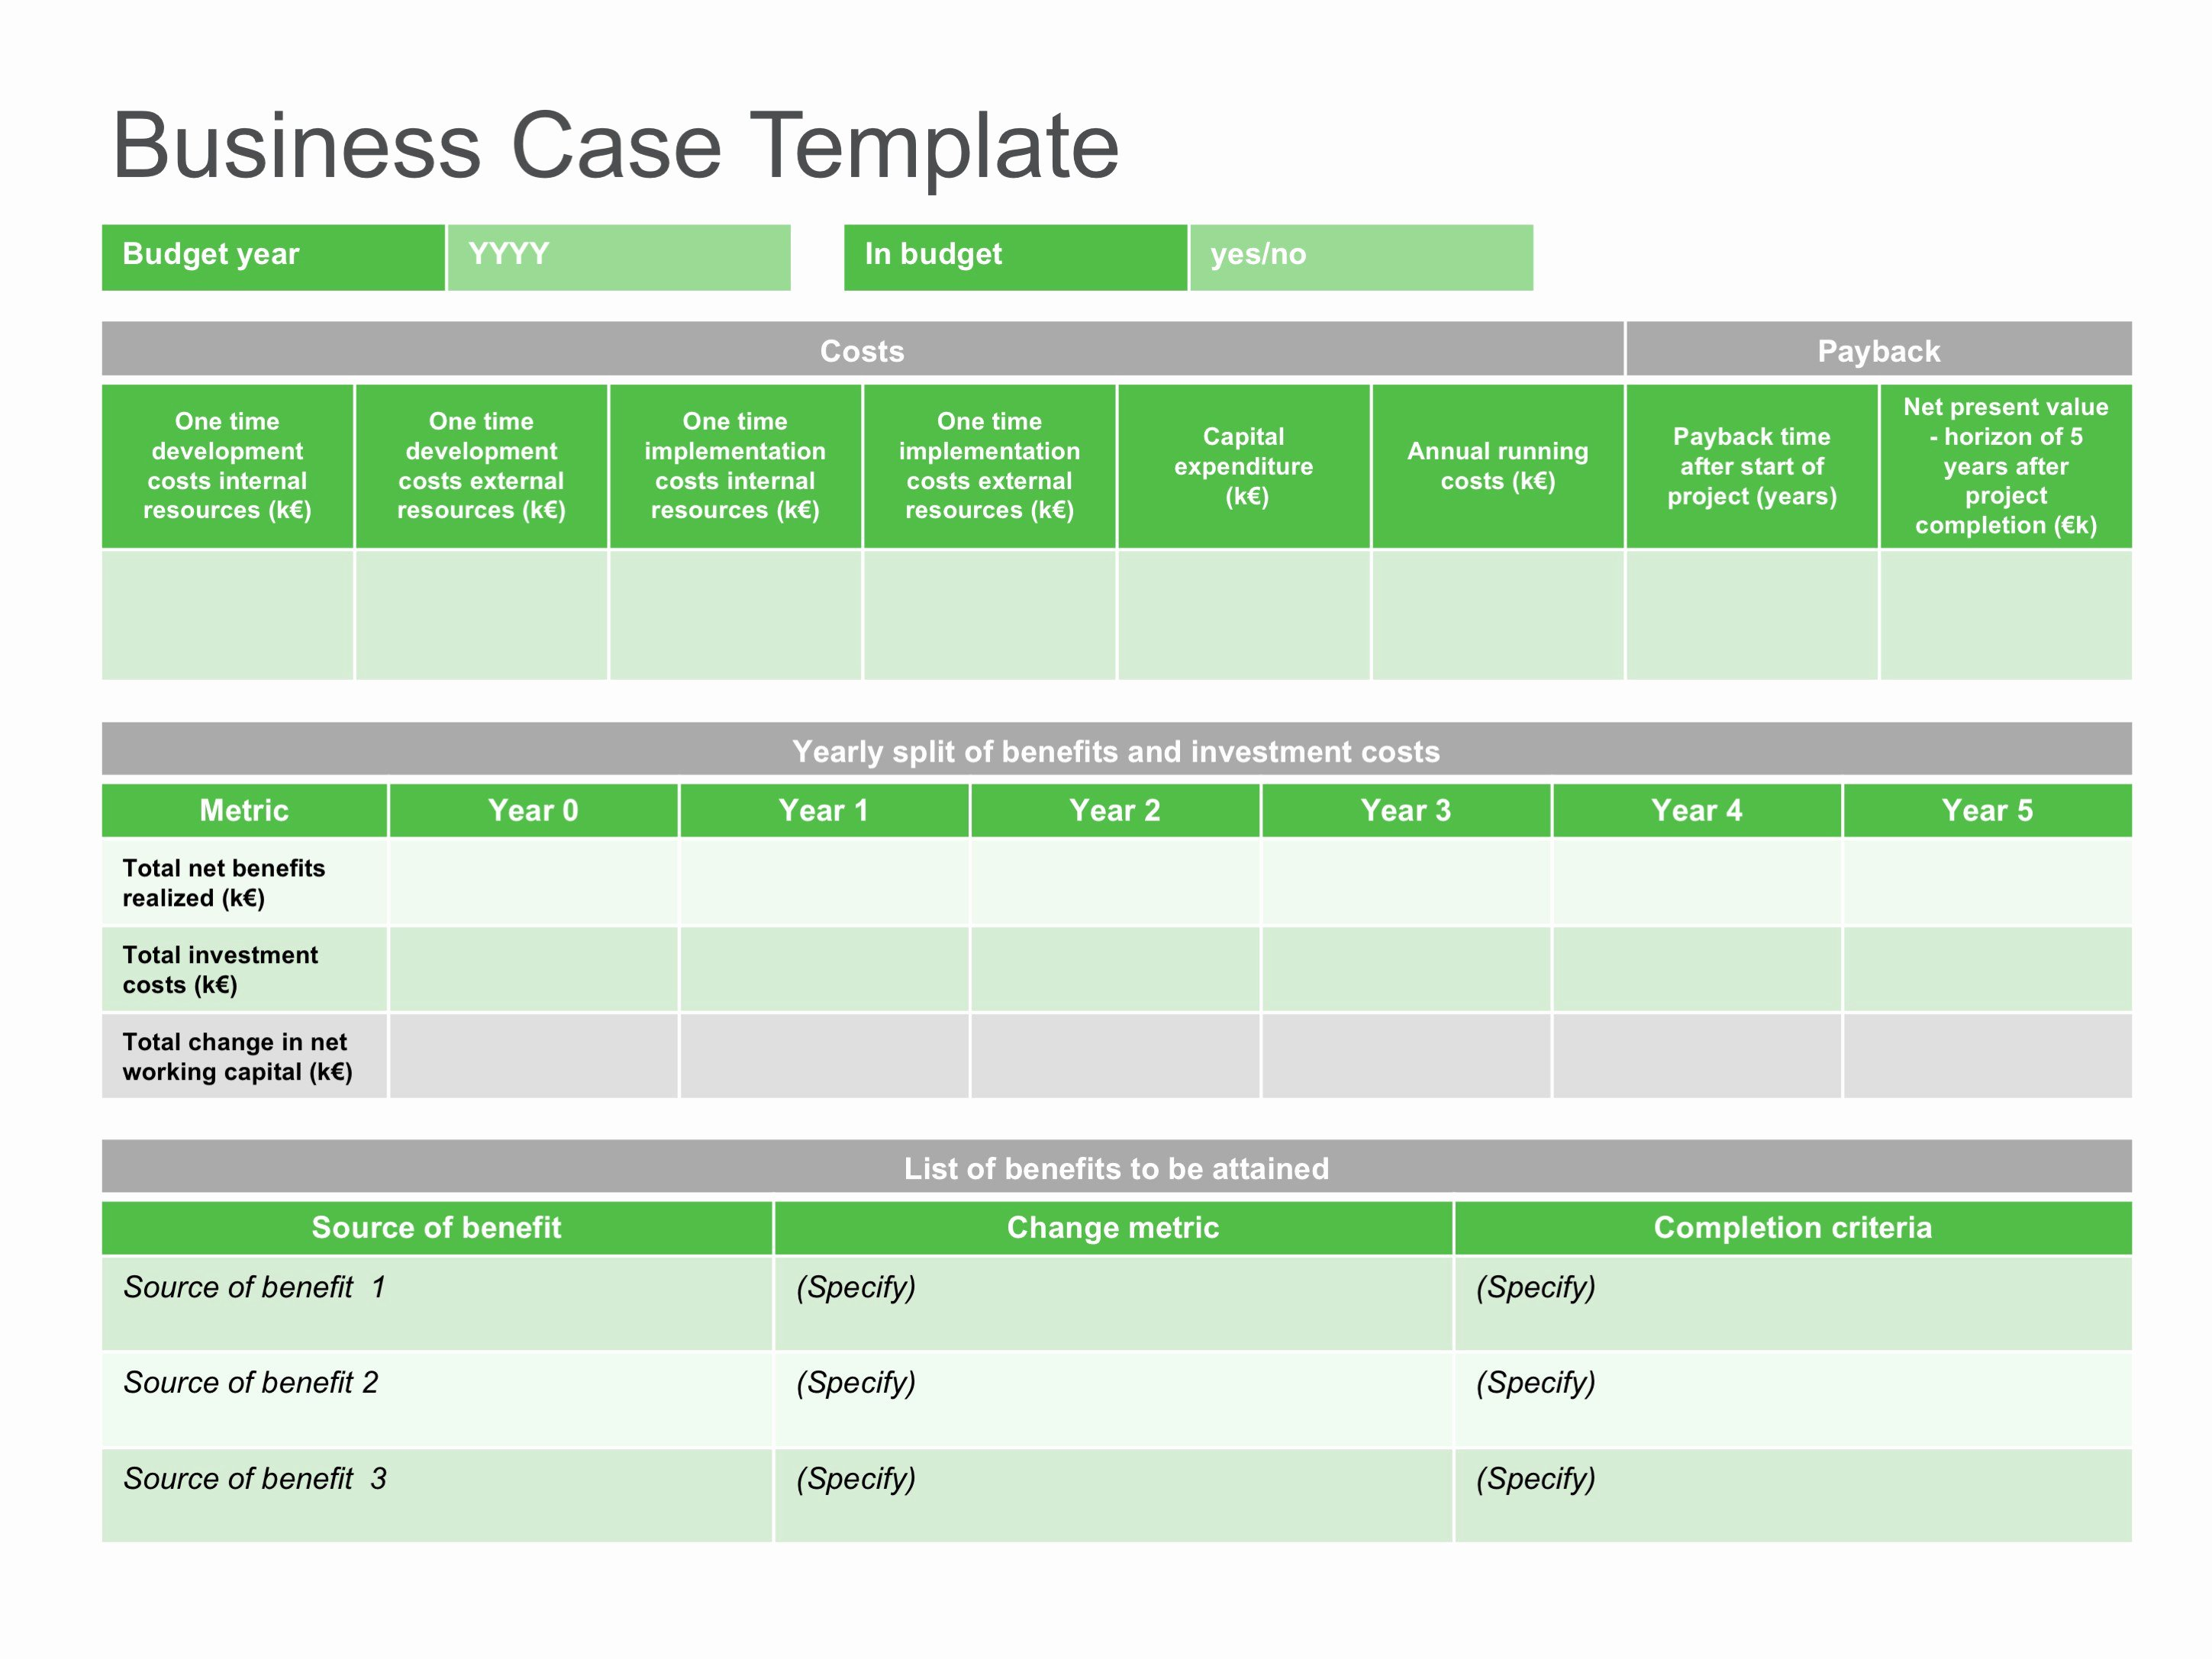 Use Cases Template Excel Lovely Sample Business Case Templates – Business Case Template